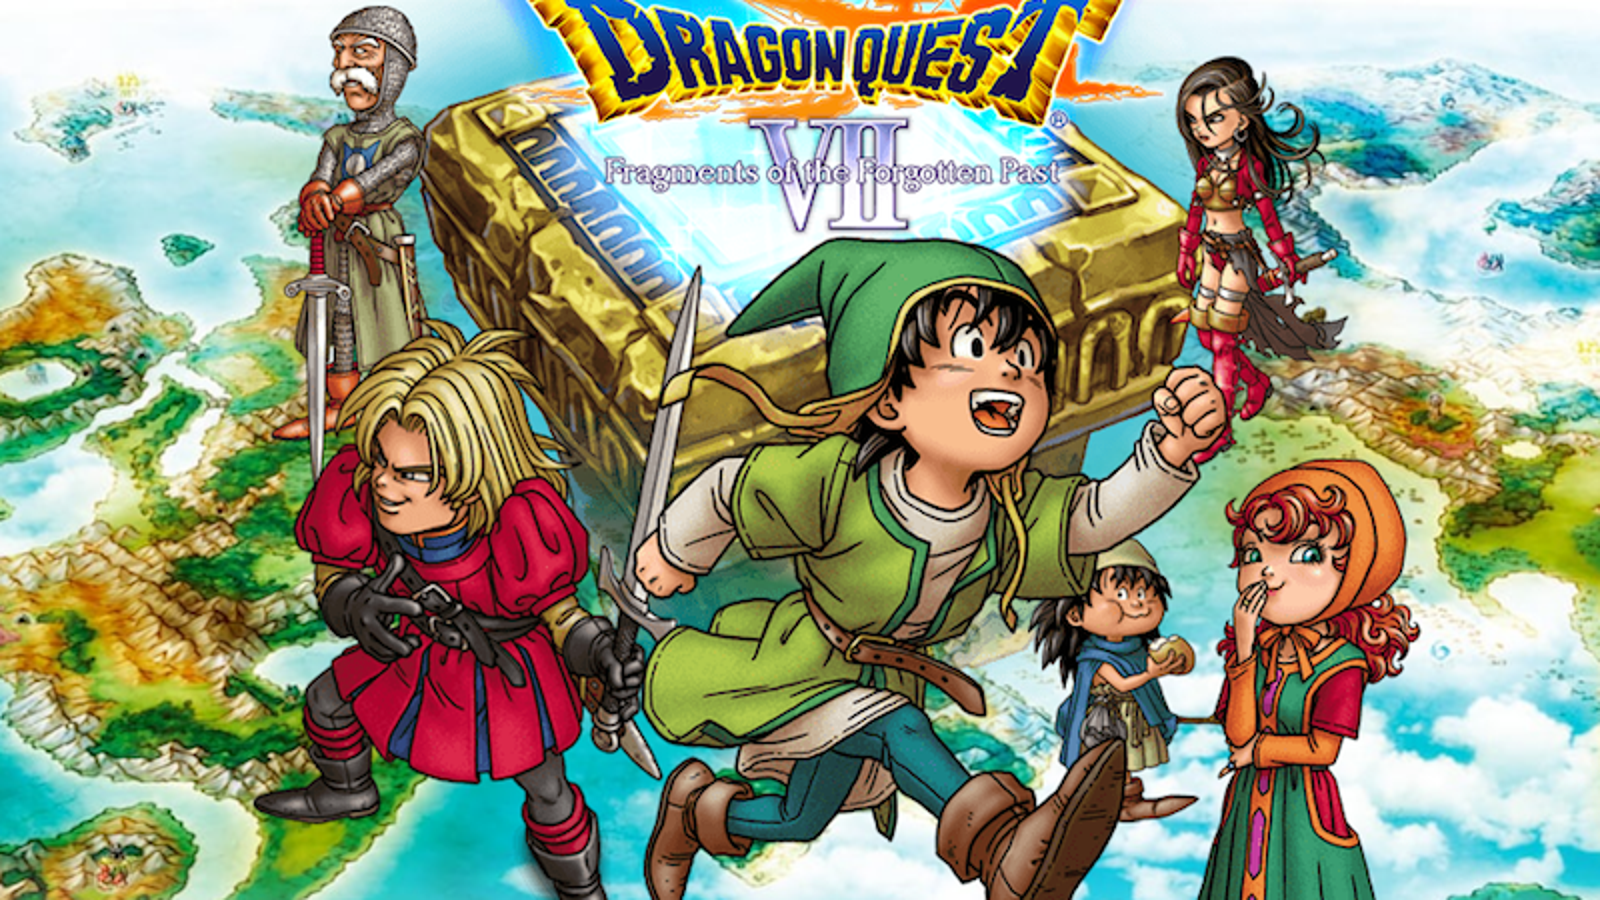 Maybe This Is Why Dragon Quest Never Took Off In The West